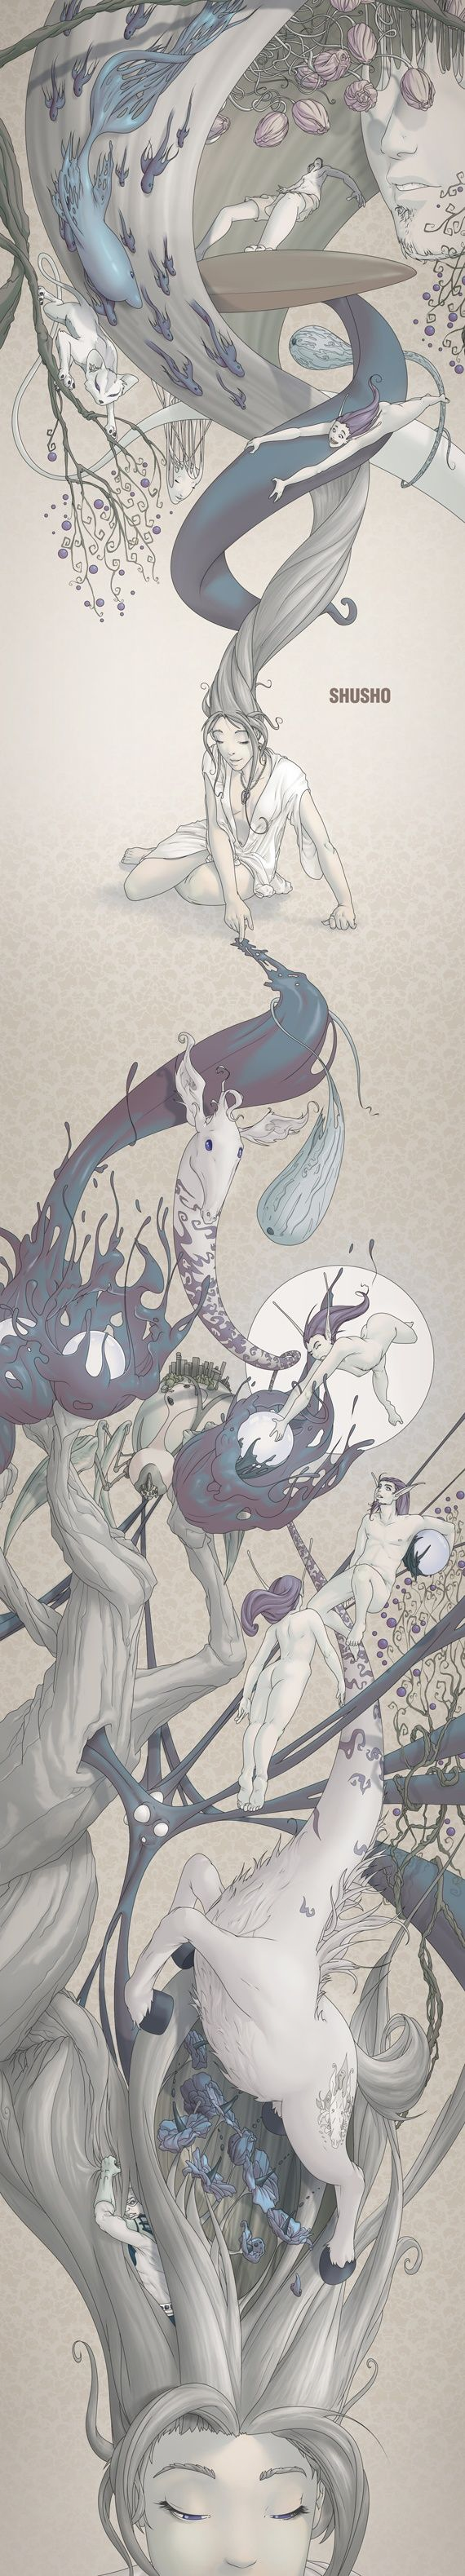 best illustration images on pinterest graphics monsters and